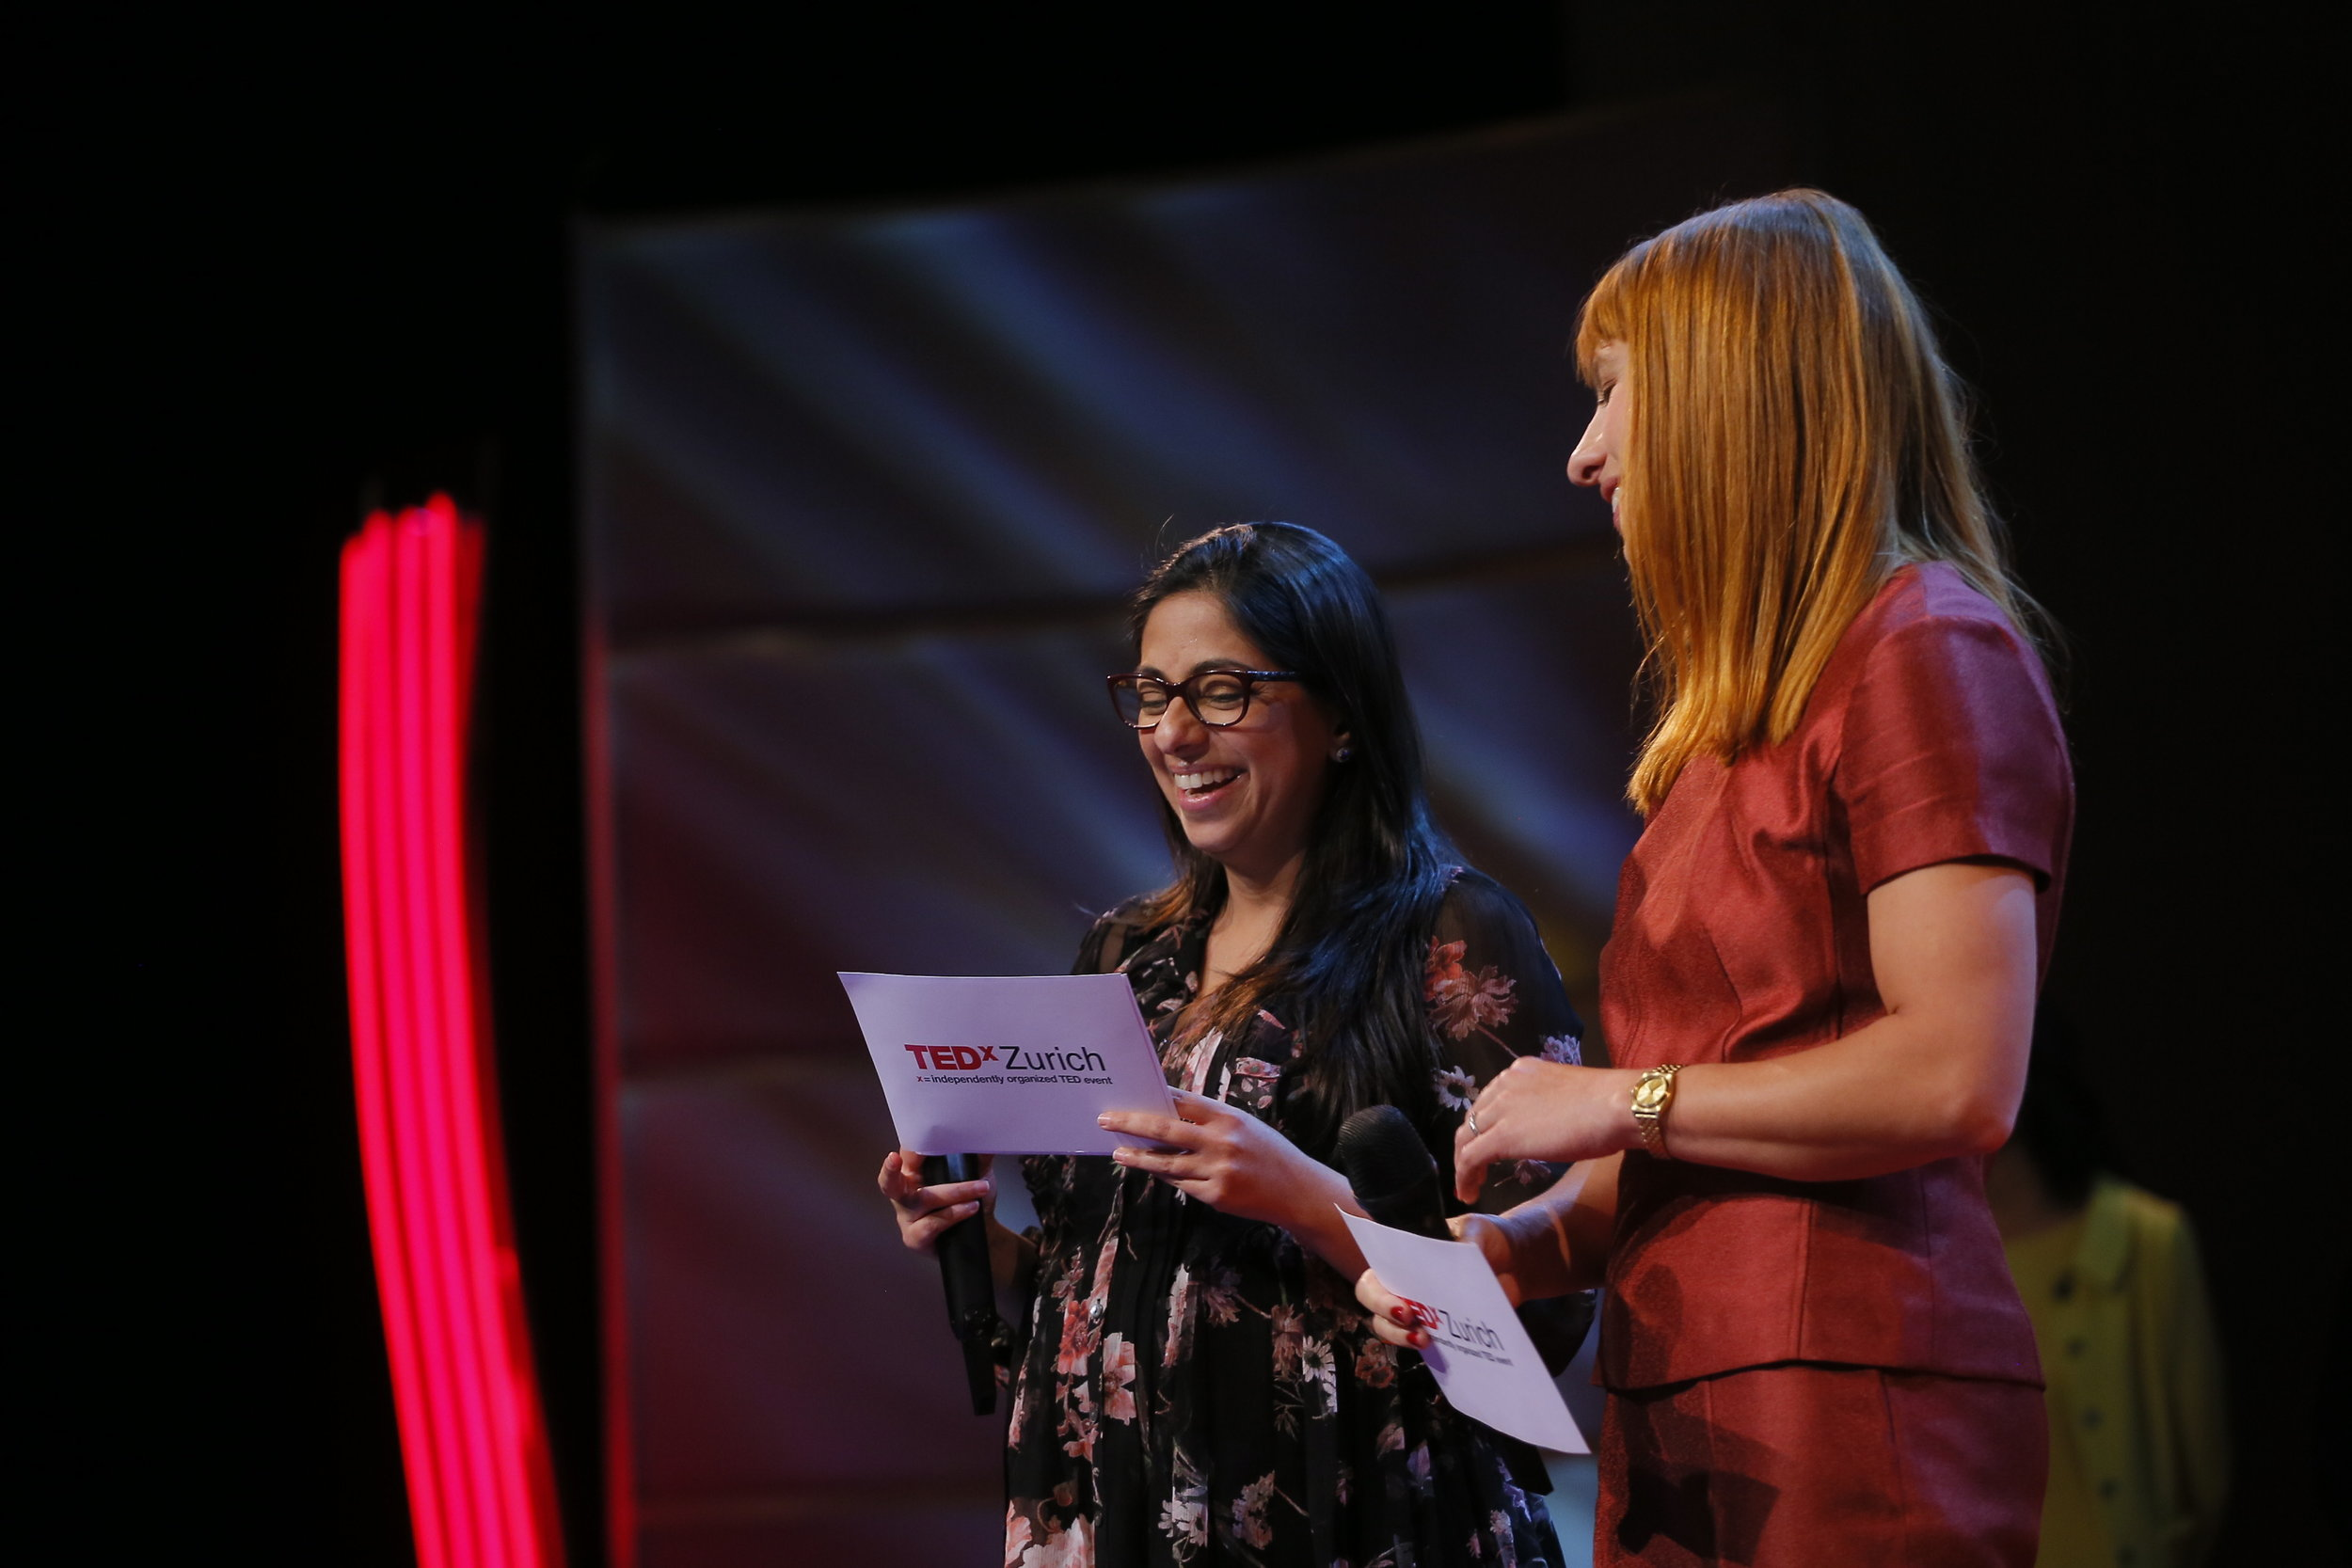 Fareena Chaudhry and Nina Schneider are the heads of committee of TEDxZurich. It was the first time TEDxZurich had co-leads and co-hosts.